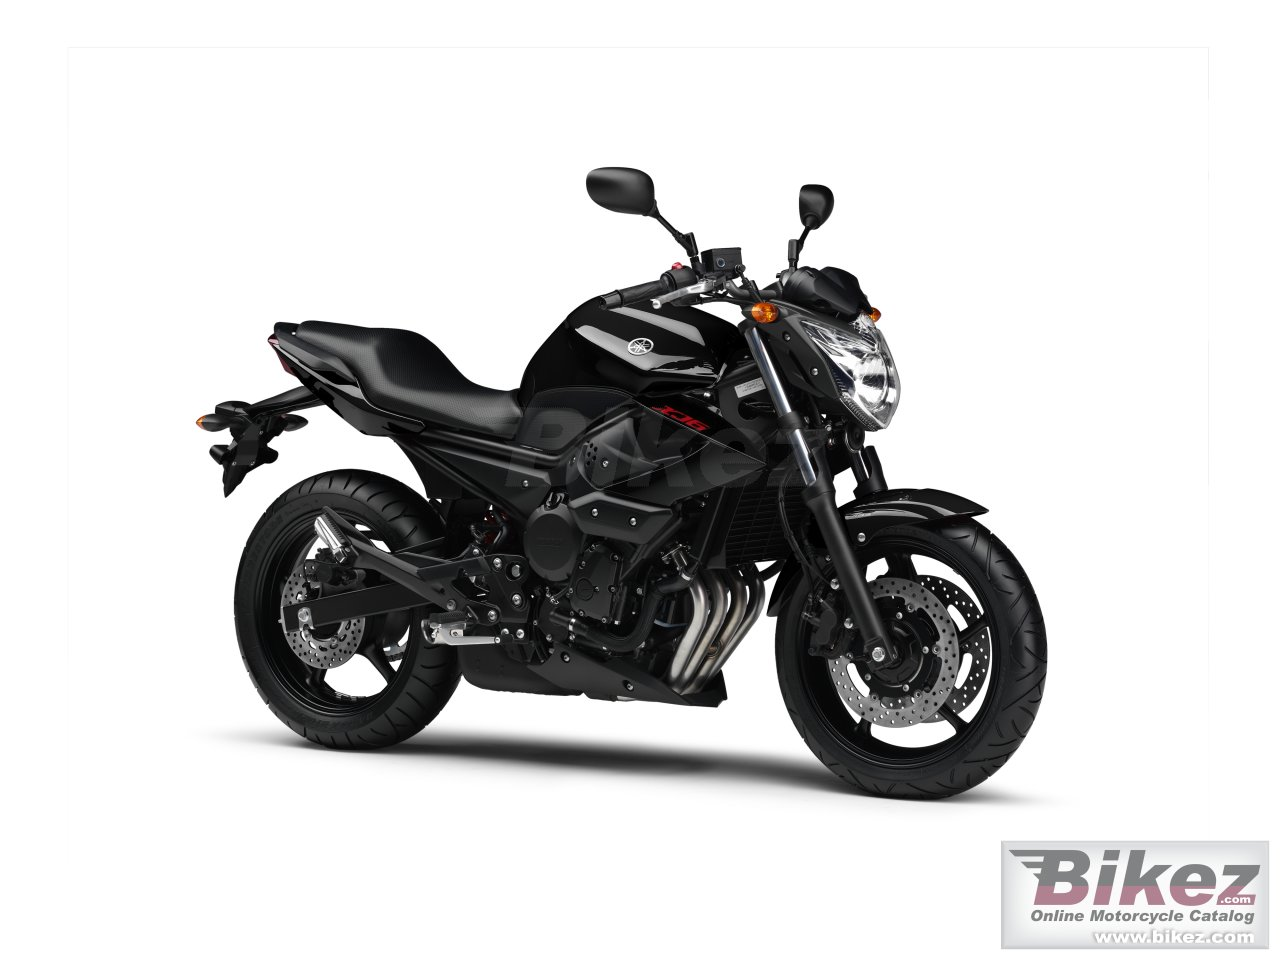 Big Yamaha xj6 abs picture and wallpaper from Bikez.com